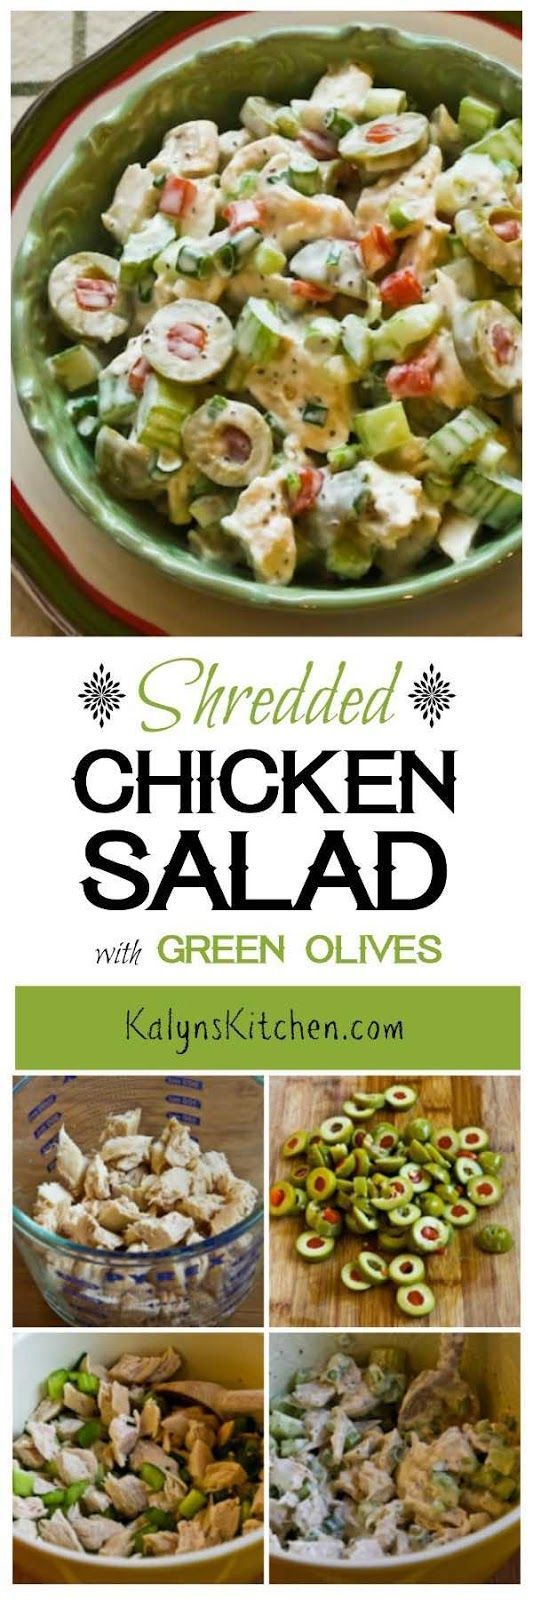 Shredded Chicken Salad with Green Olives, Celery, and Green Onion is a perfect low-carb salad with Christmas colors, but this salad is great any time of year.  [found on KalynsKitchen.com]